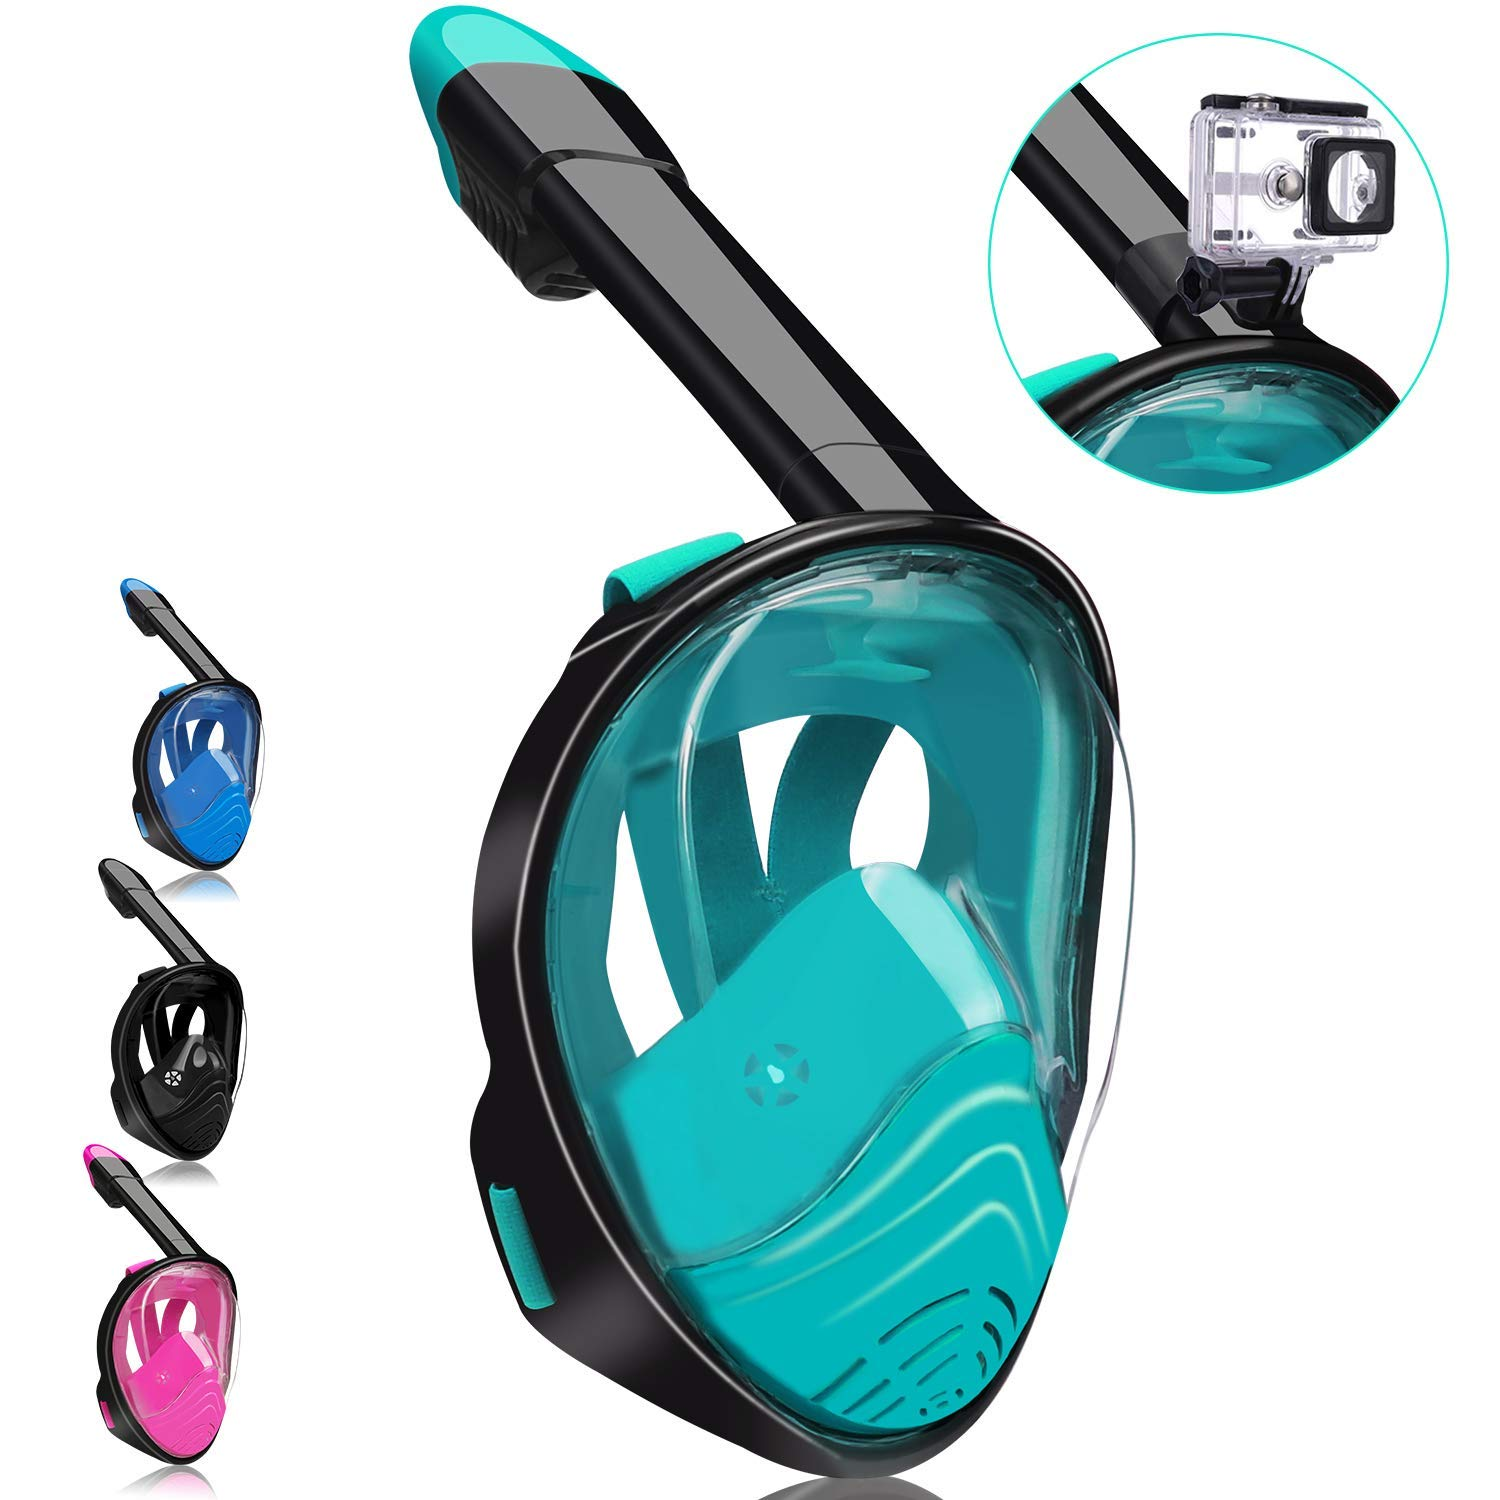 QingSong Full Face Snorkel Mask, Snorkeling Mask with Detachable Camera Mount, 180 Degree Panoramic View Anti-Fog Anti-Leak Snorkel Set for Kids & Adult